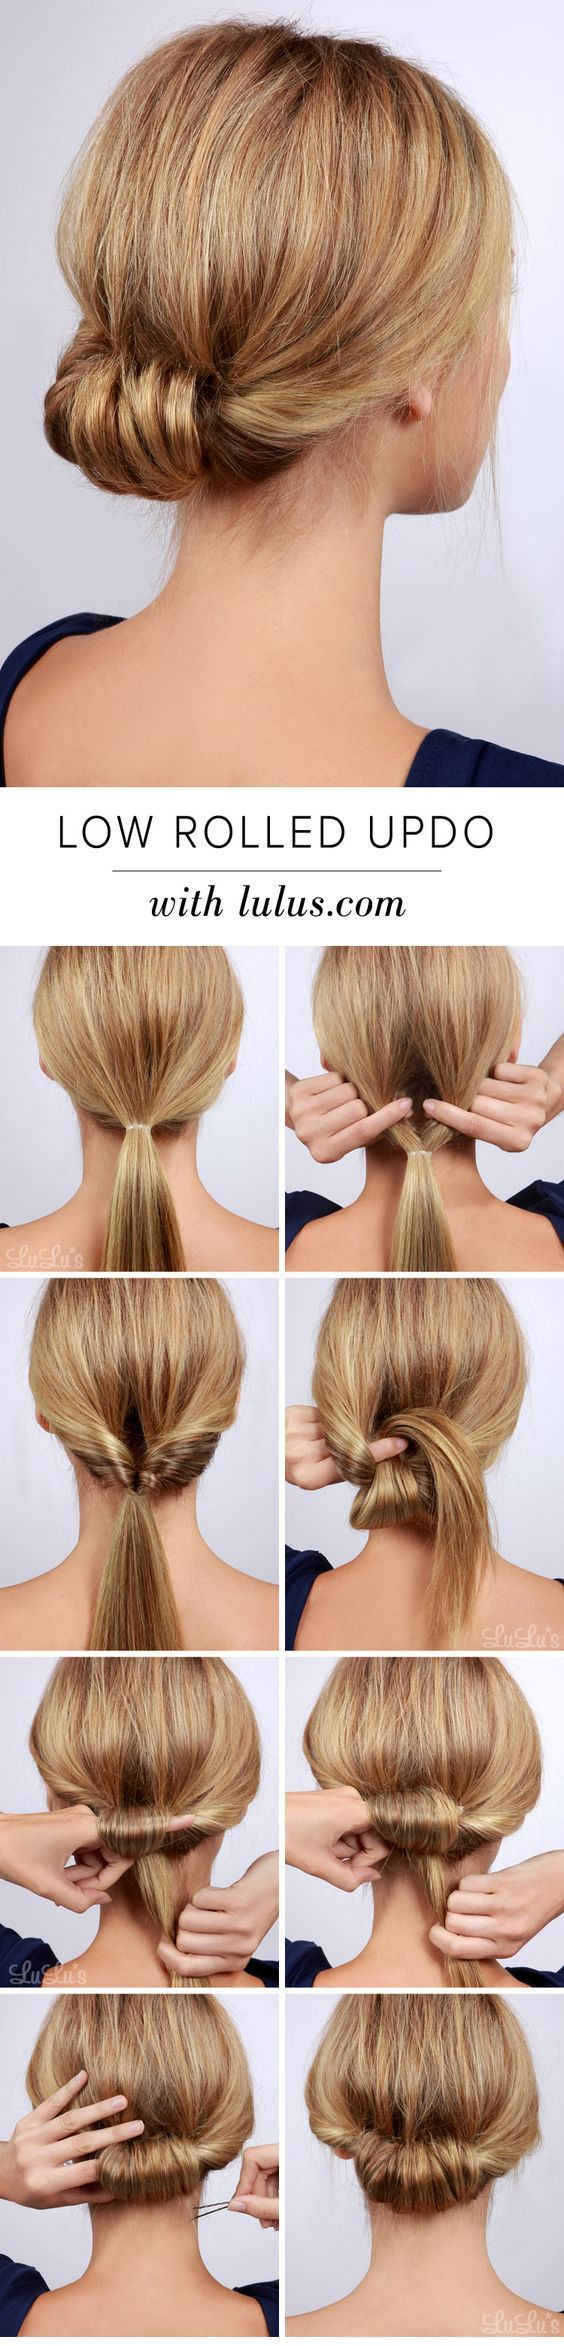 Lulus How To Low Rolled Updo Hair Tutorial Lulus Com Fashion Blog Long Hair Updo Wedding Hairstyles For Long Hair Hair Tutorial